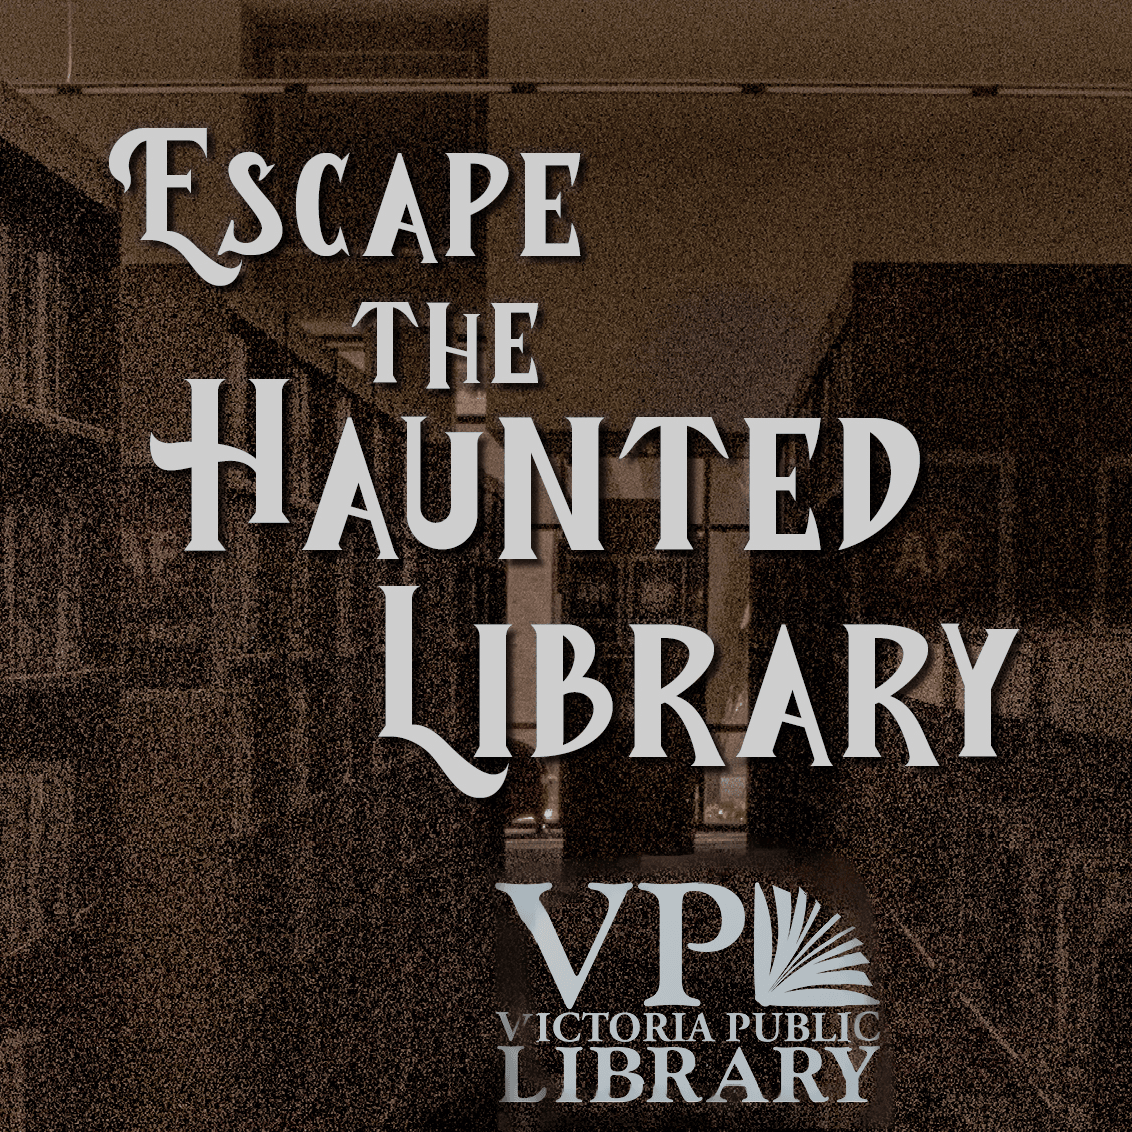 Escape the Haunted Library, new virtual escape room available now